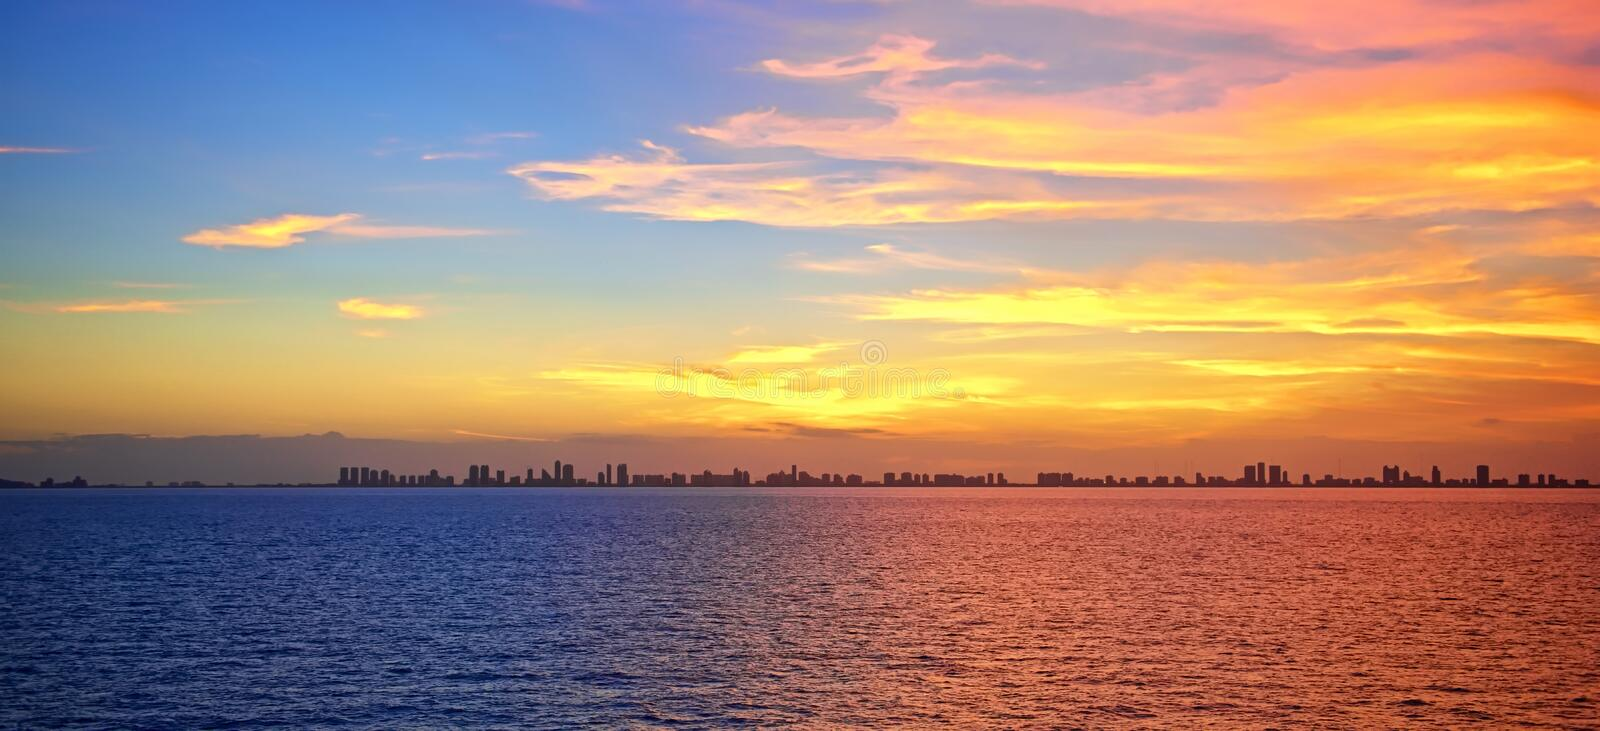 Fort Lauderdale Sunset royalty free stock images